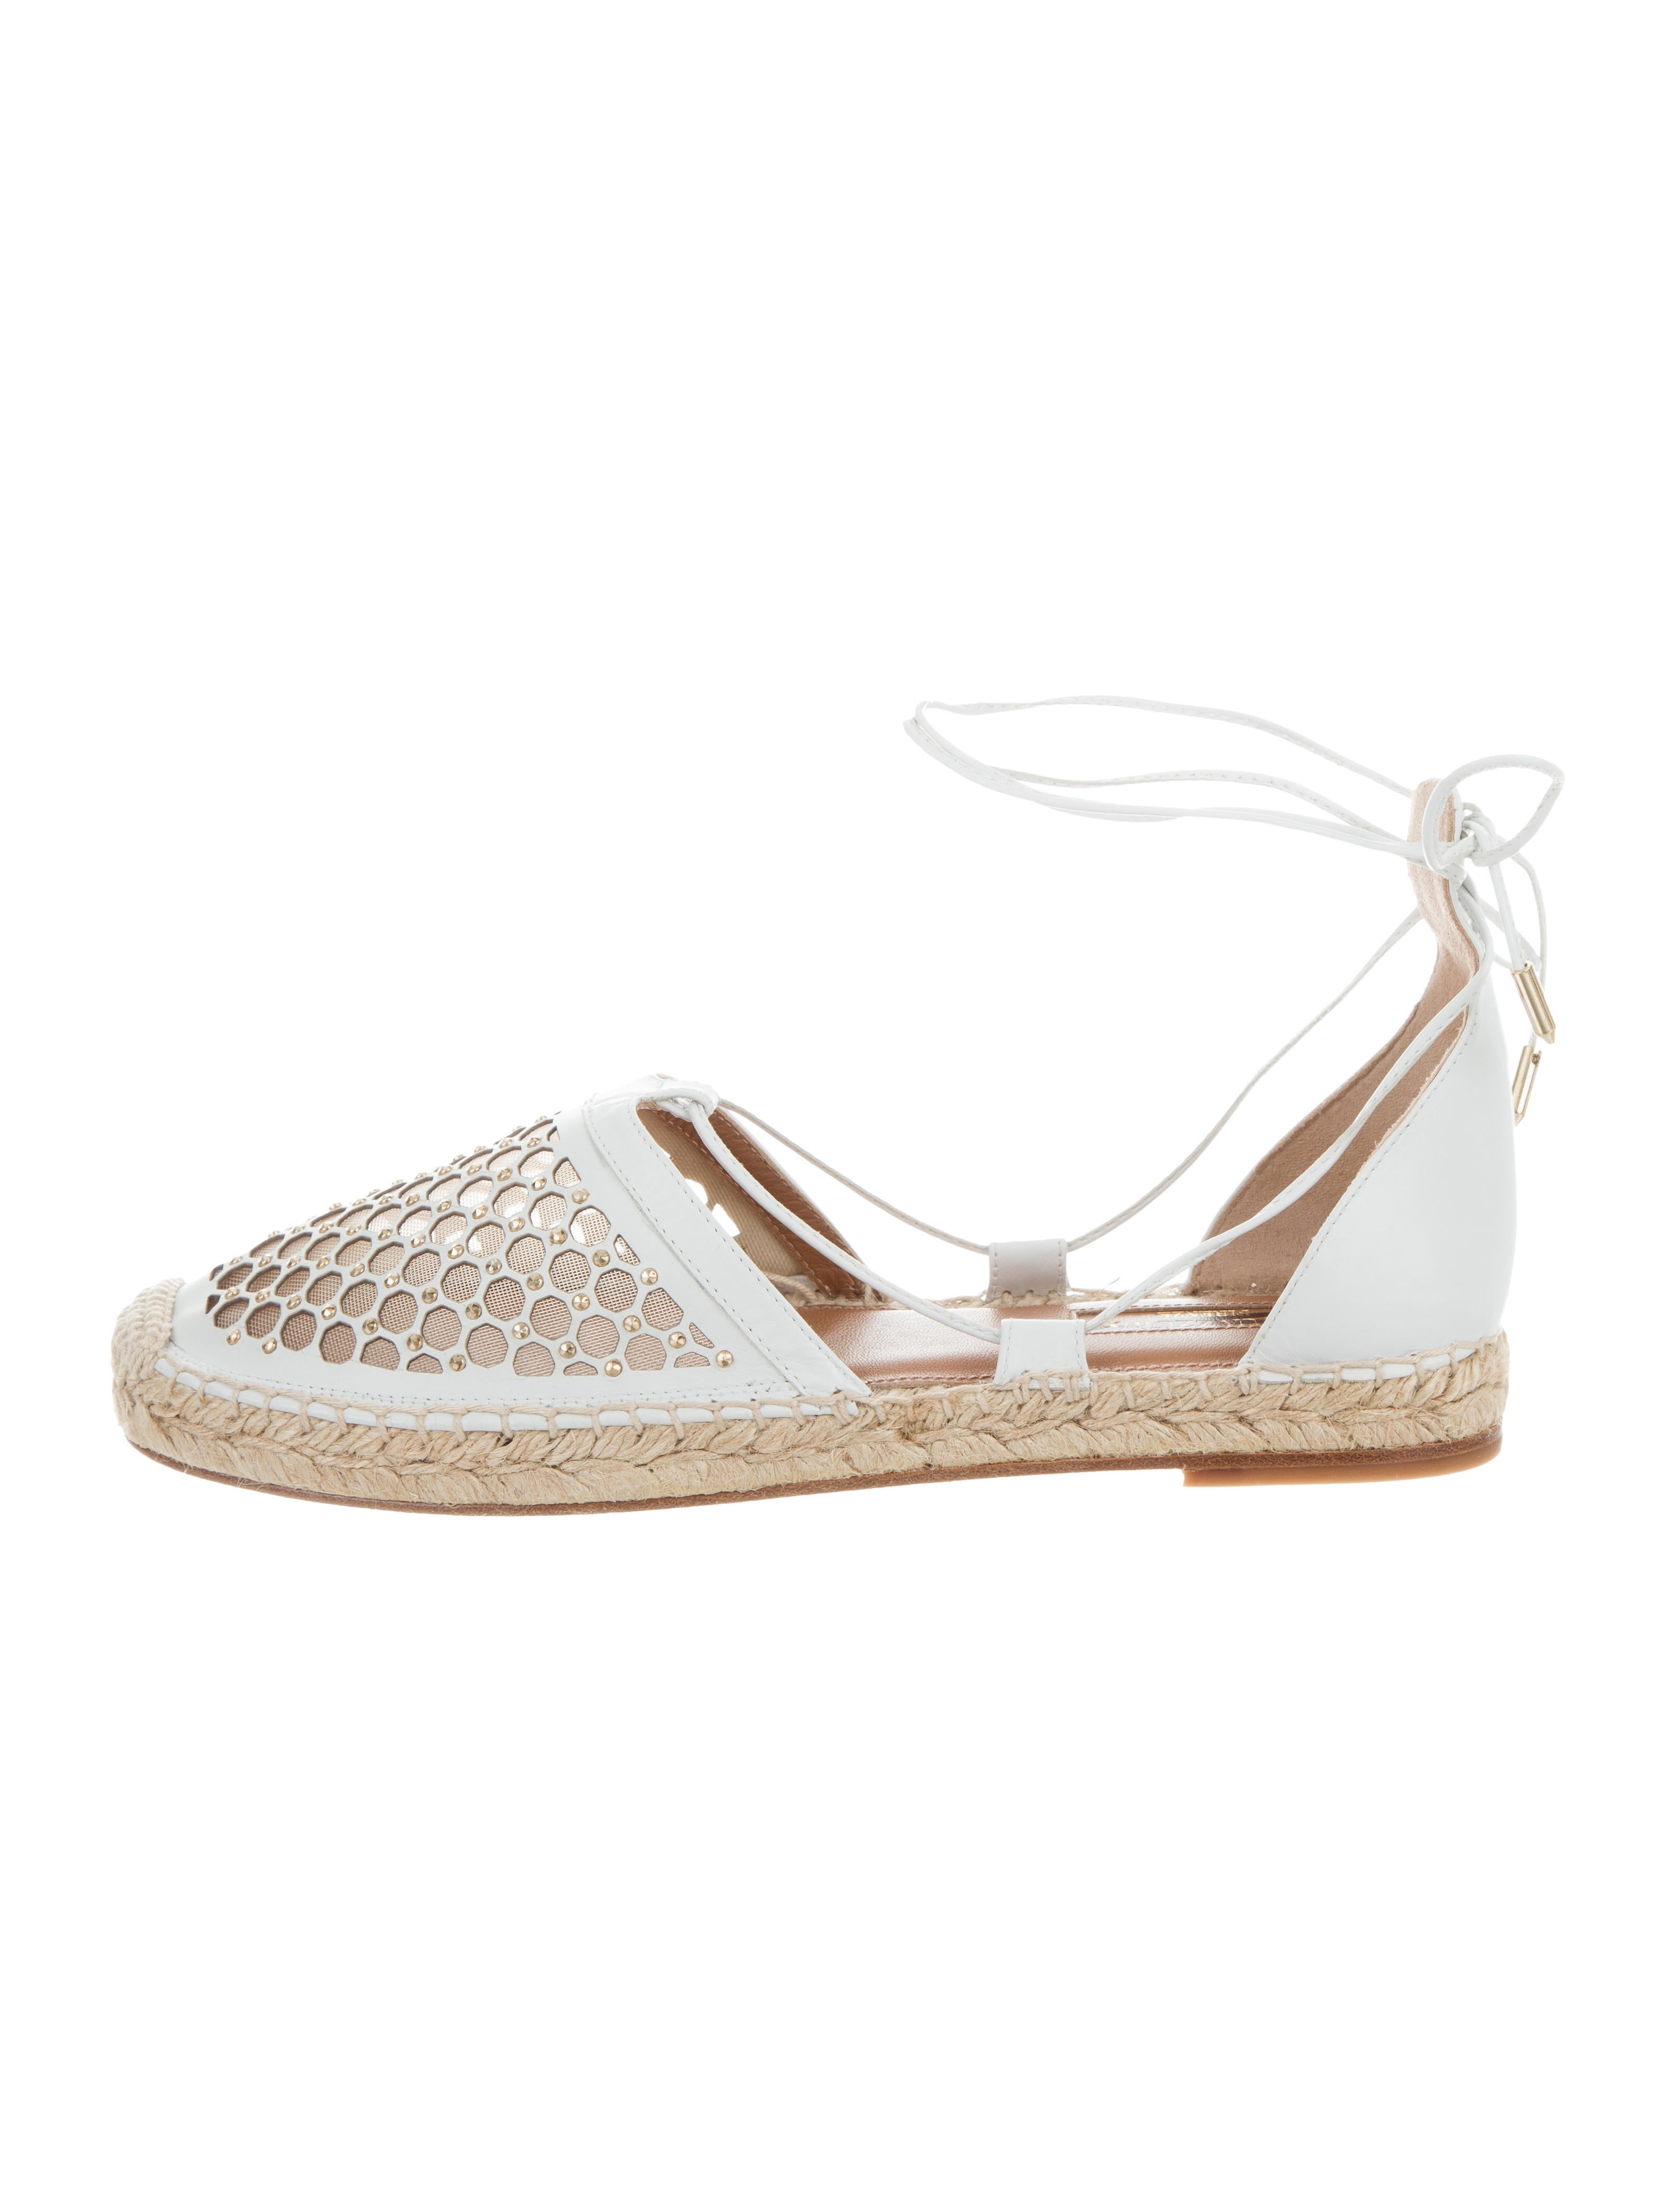 Aquazzura Blondie Embellished Espadrilles cheapest price for sale shop online cheap sale explore uIWD88